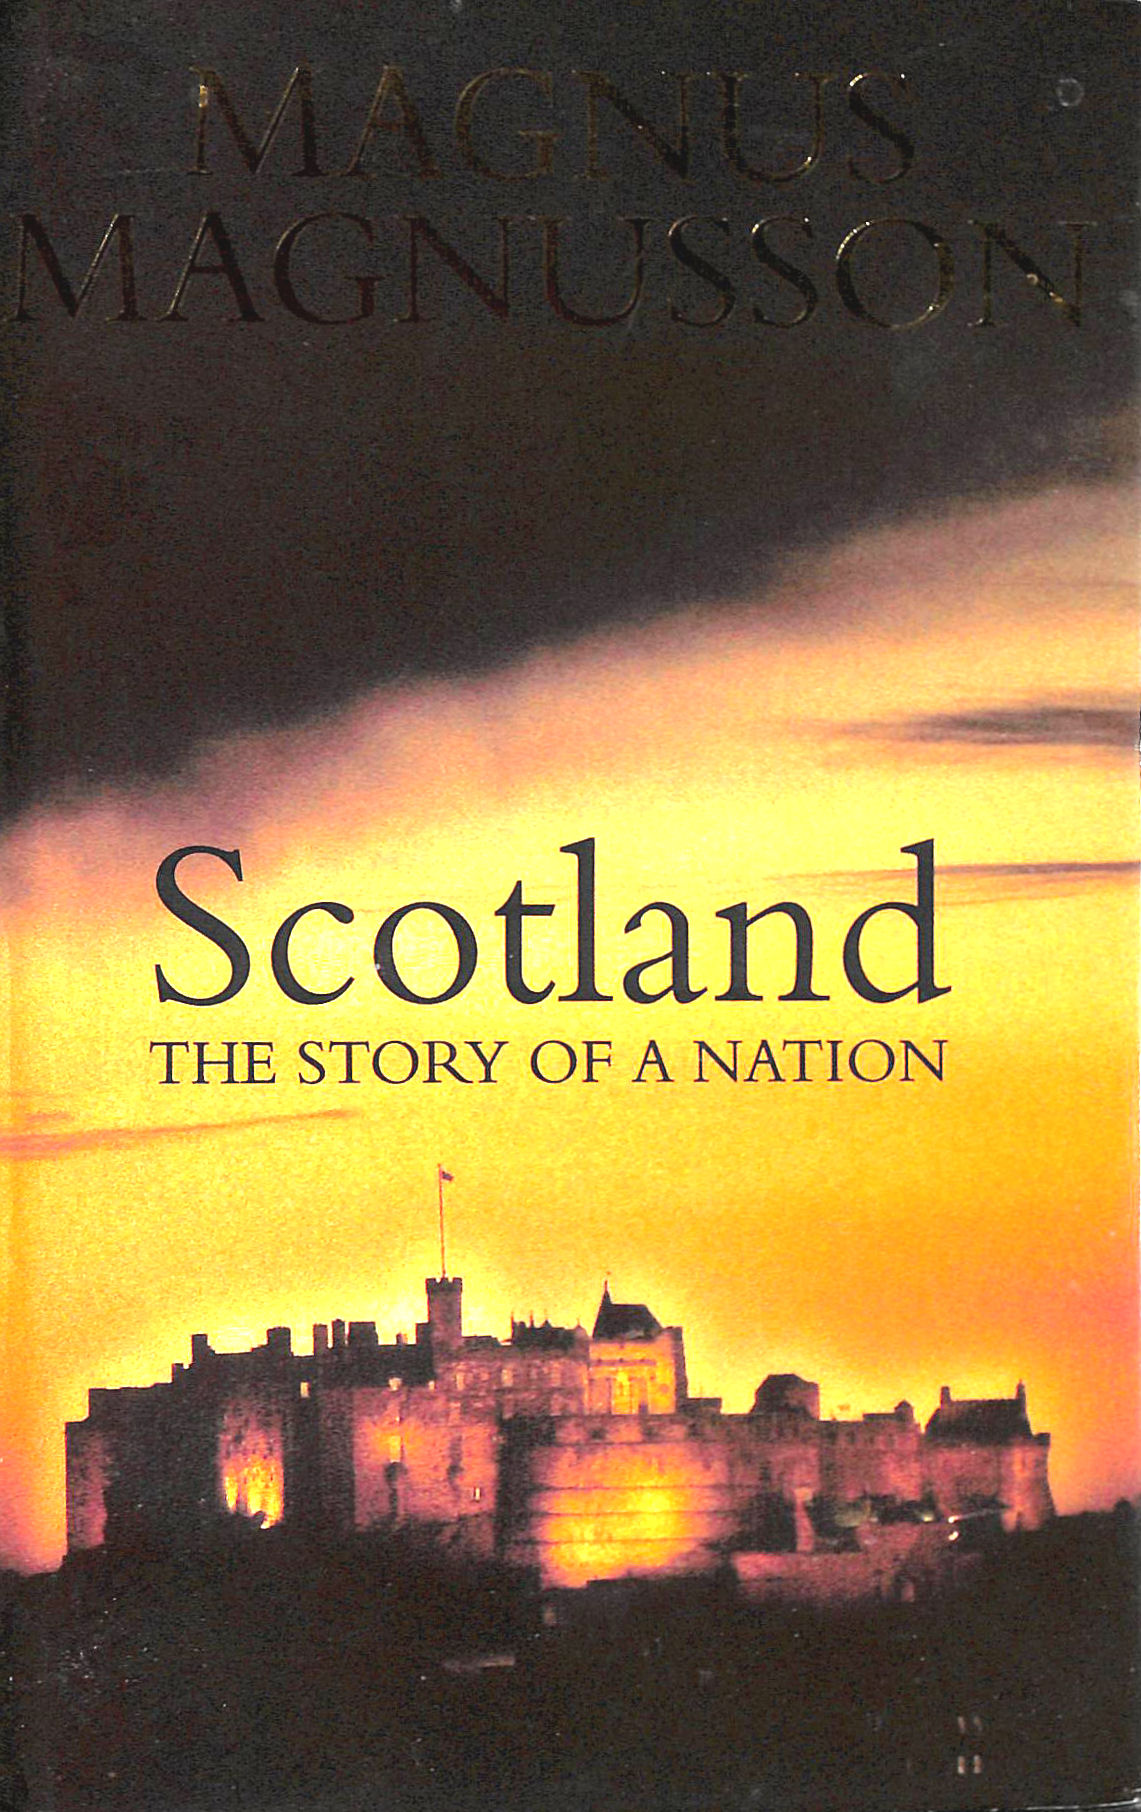 Image for Scotland: The Story of a Nation